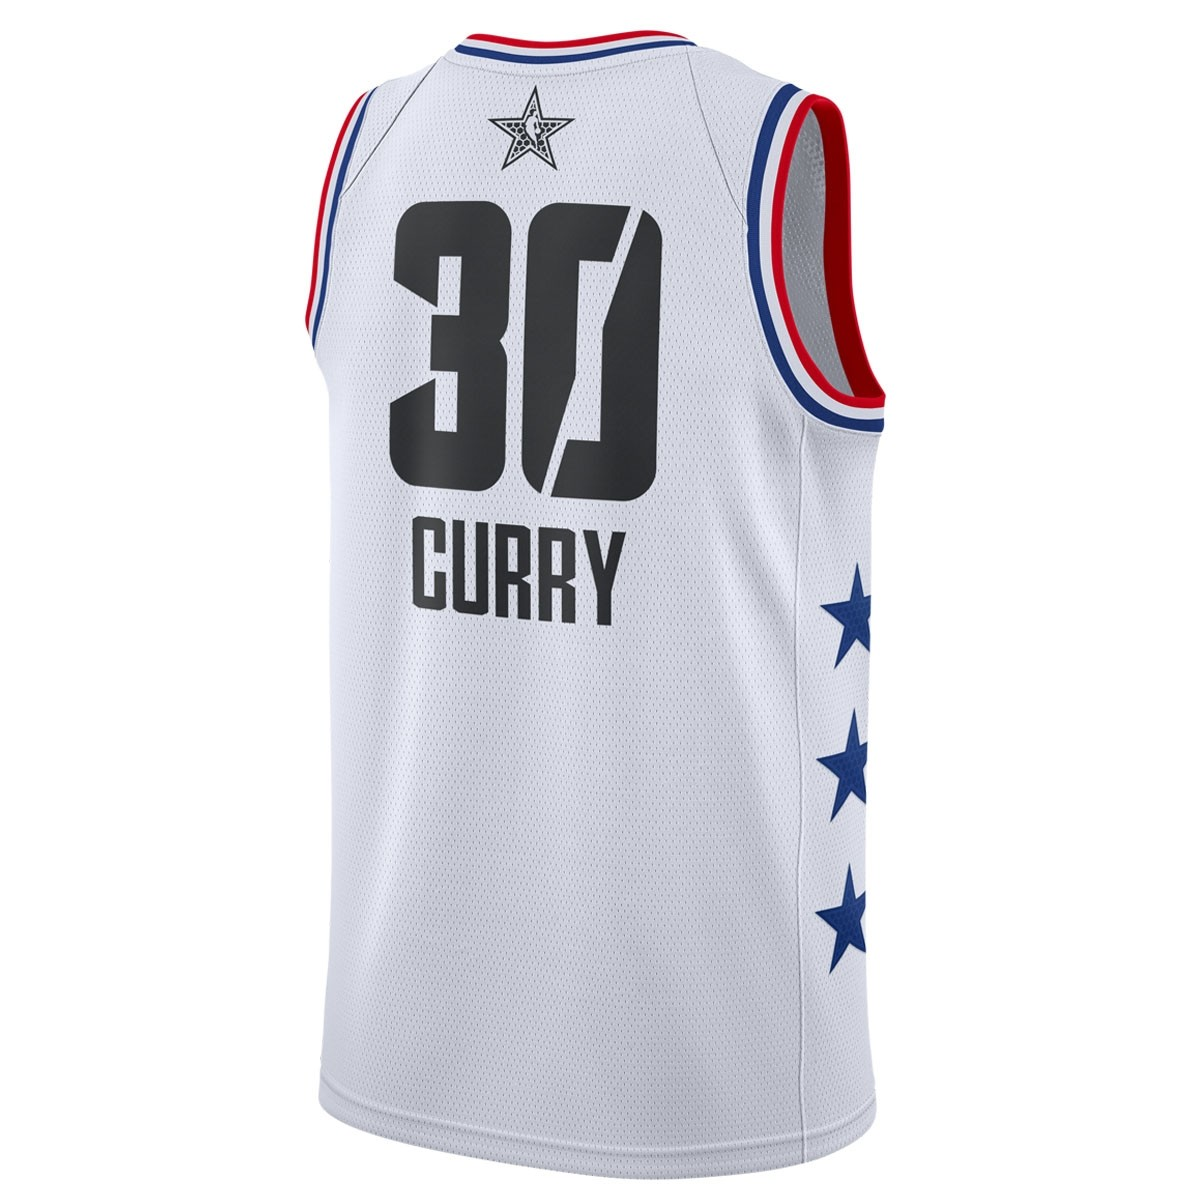 Jordan Swigman Jersey All-Star Curry edition 'White'  AQ7297-101